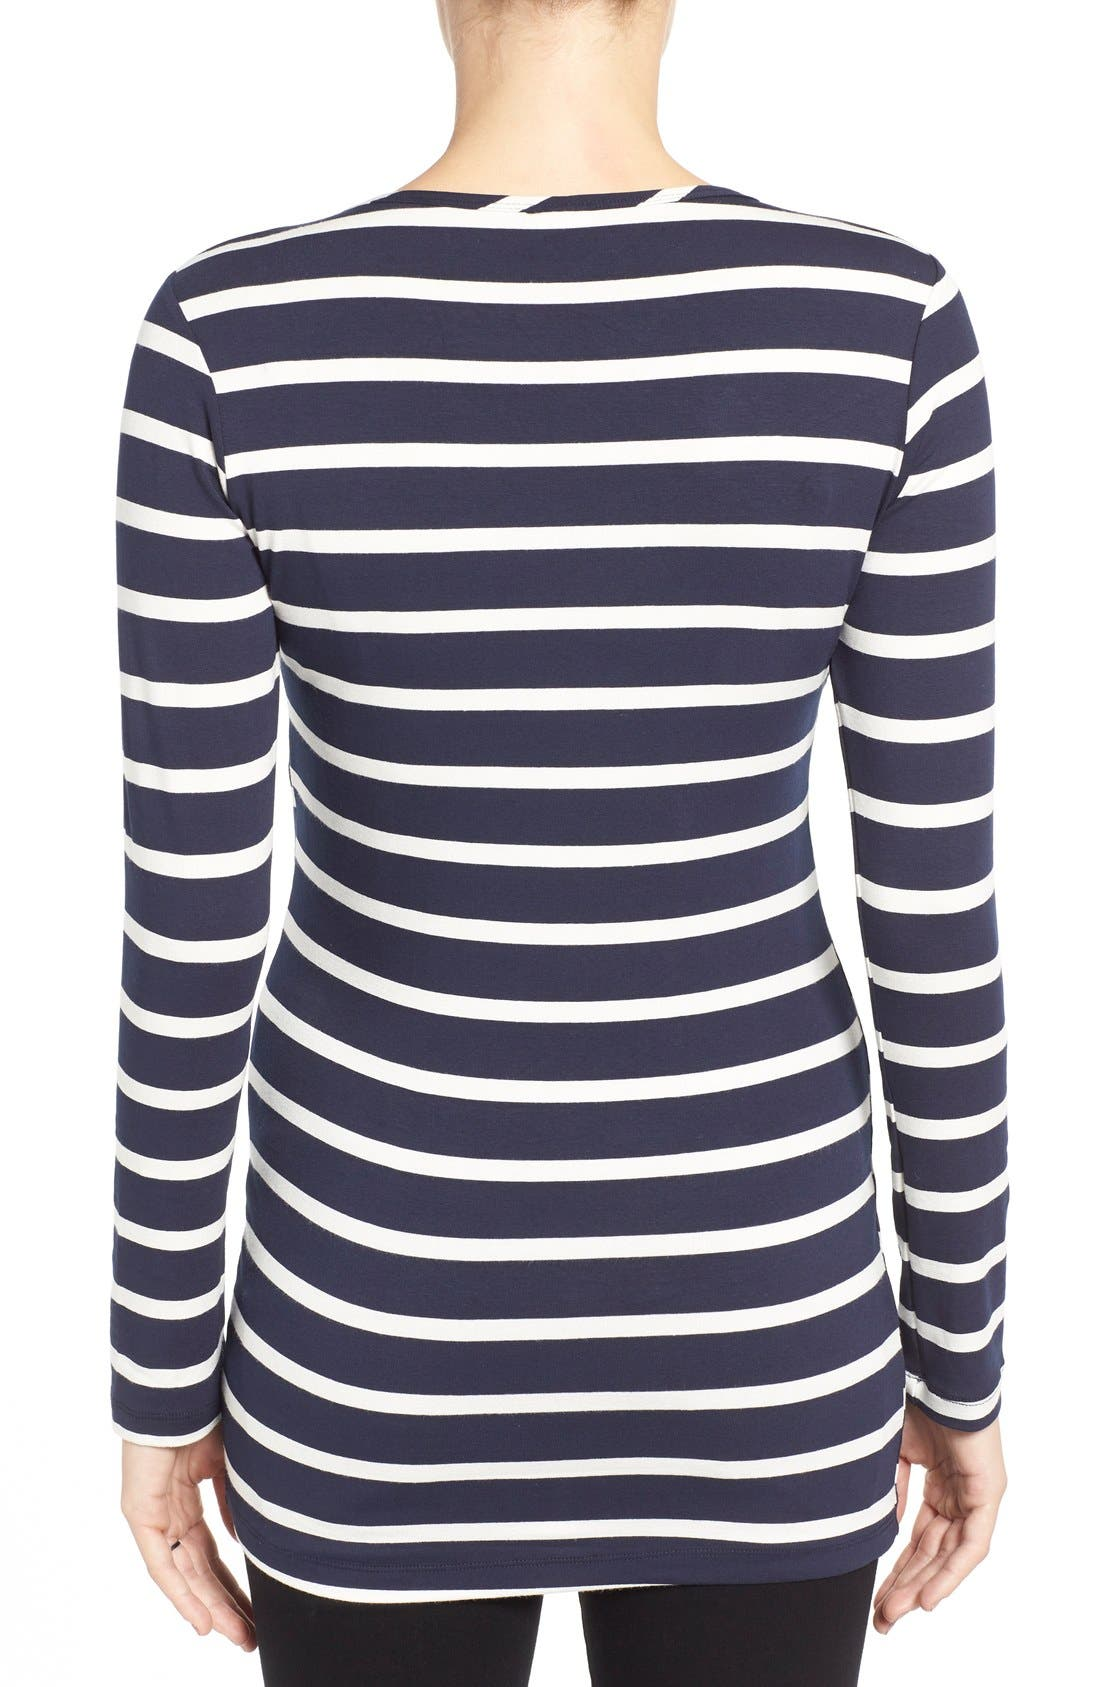 'Wendy' Nursing Top,                             Alternate thumbnail 3, color,                             UNEVEN NAVY STRIPE